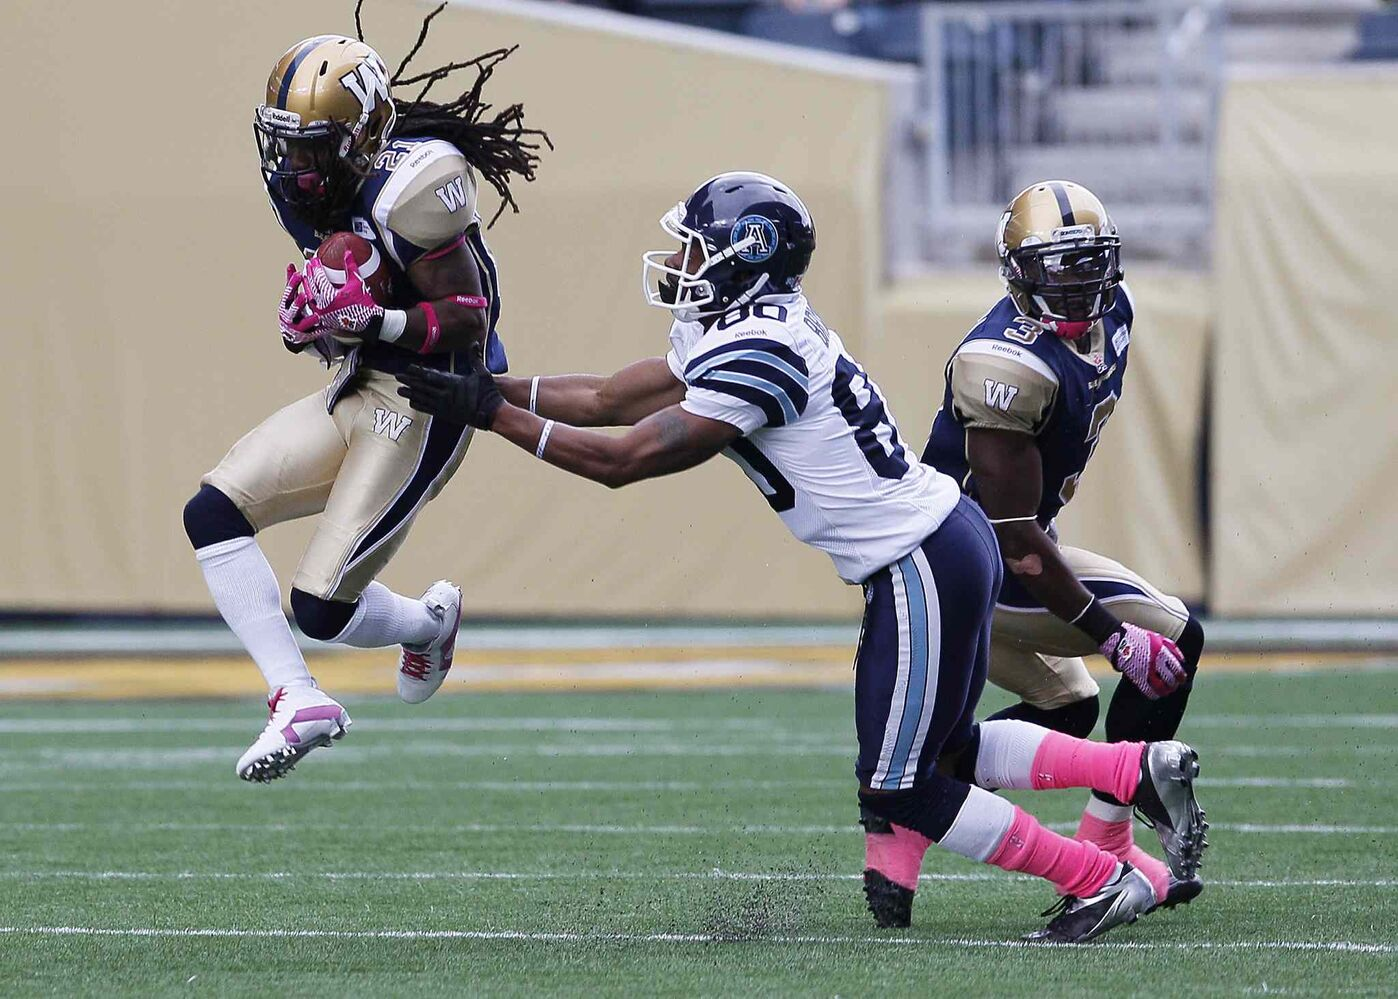 Winnipeg Blue Bombers' Alex Suber (21) snags the pass in front of Toronto Argonauts' Romby Bryant (80). (JOHN WOODS / THE CANADIAN PRESS)